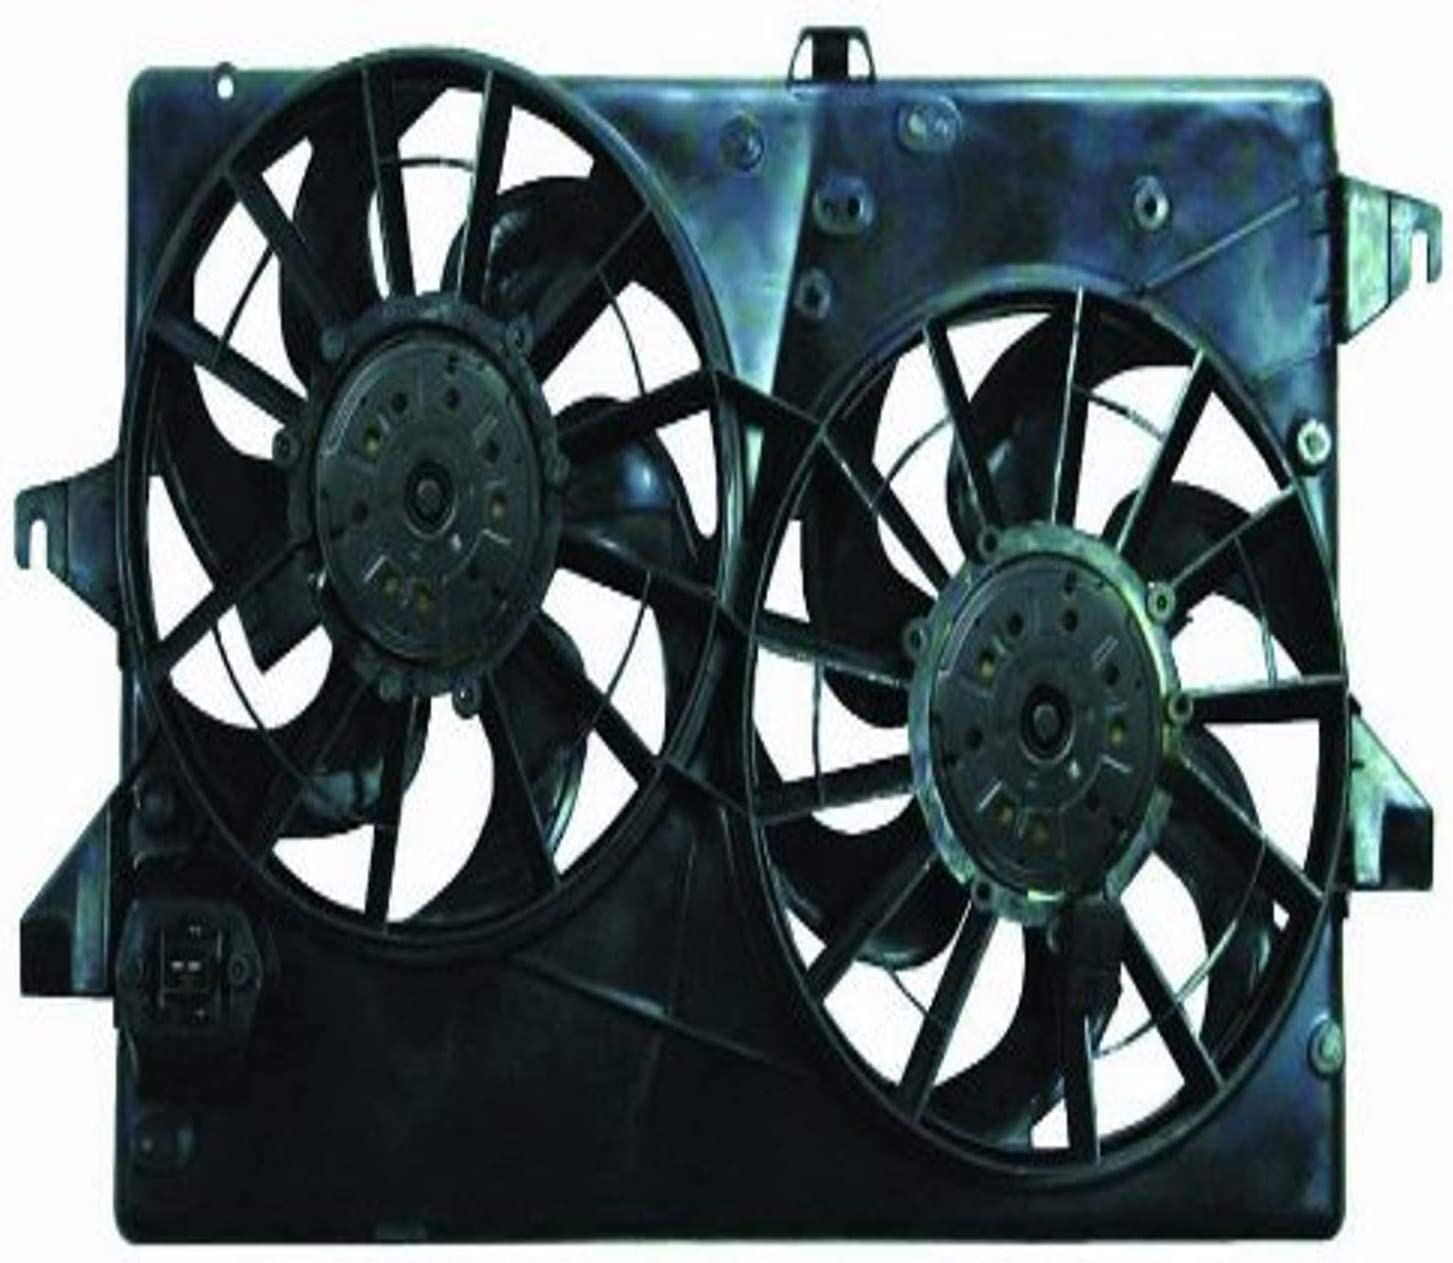 DEPO 330-55008-000 Replacement Engine Cooling Fan Assembly (This product is an aftermarket product. It is not created or sold by the OE car company)